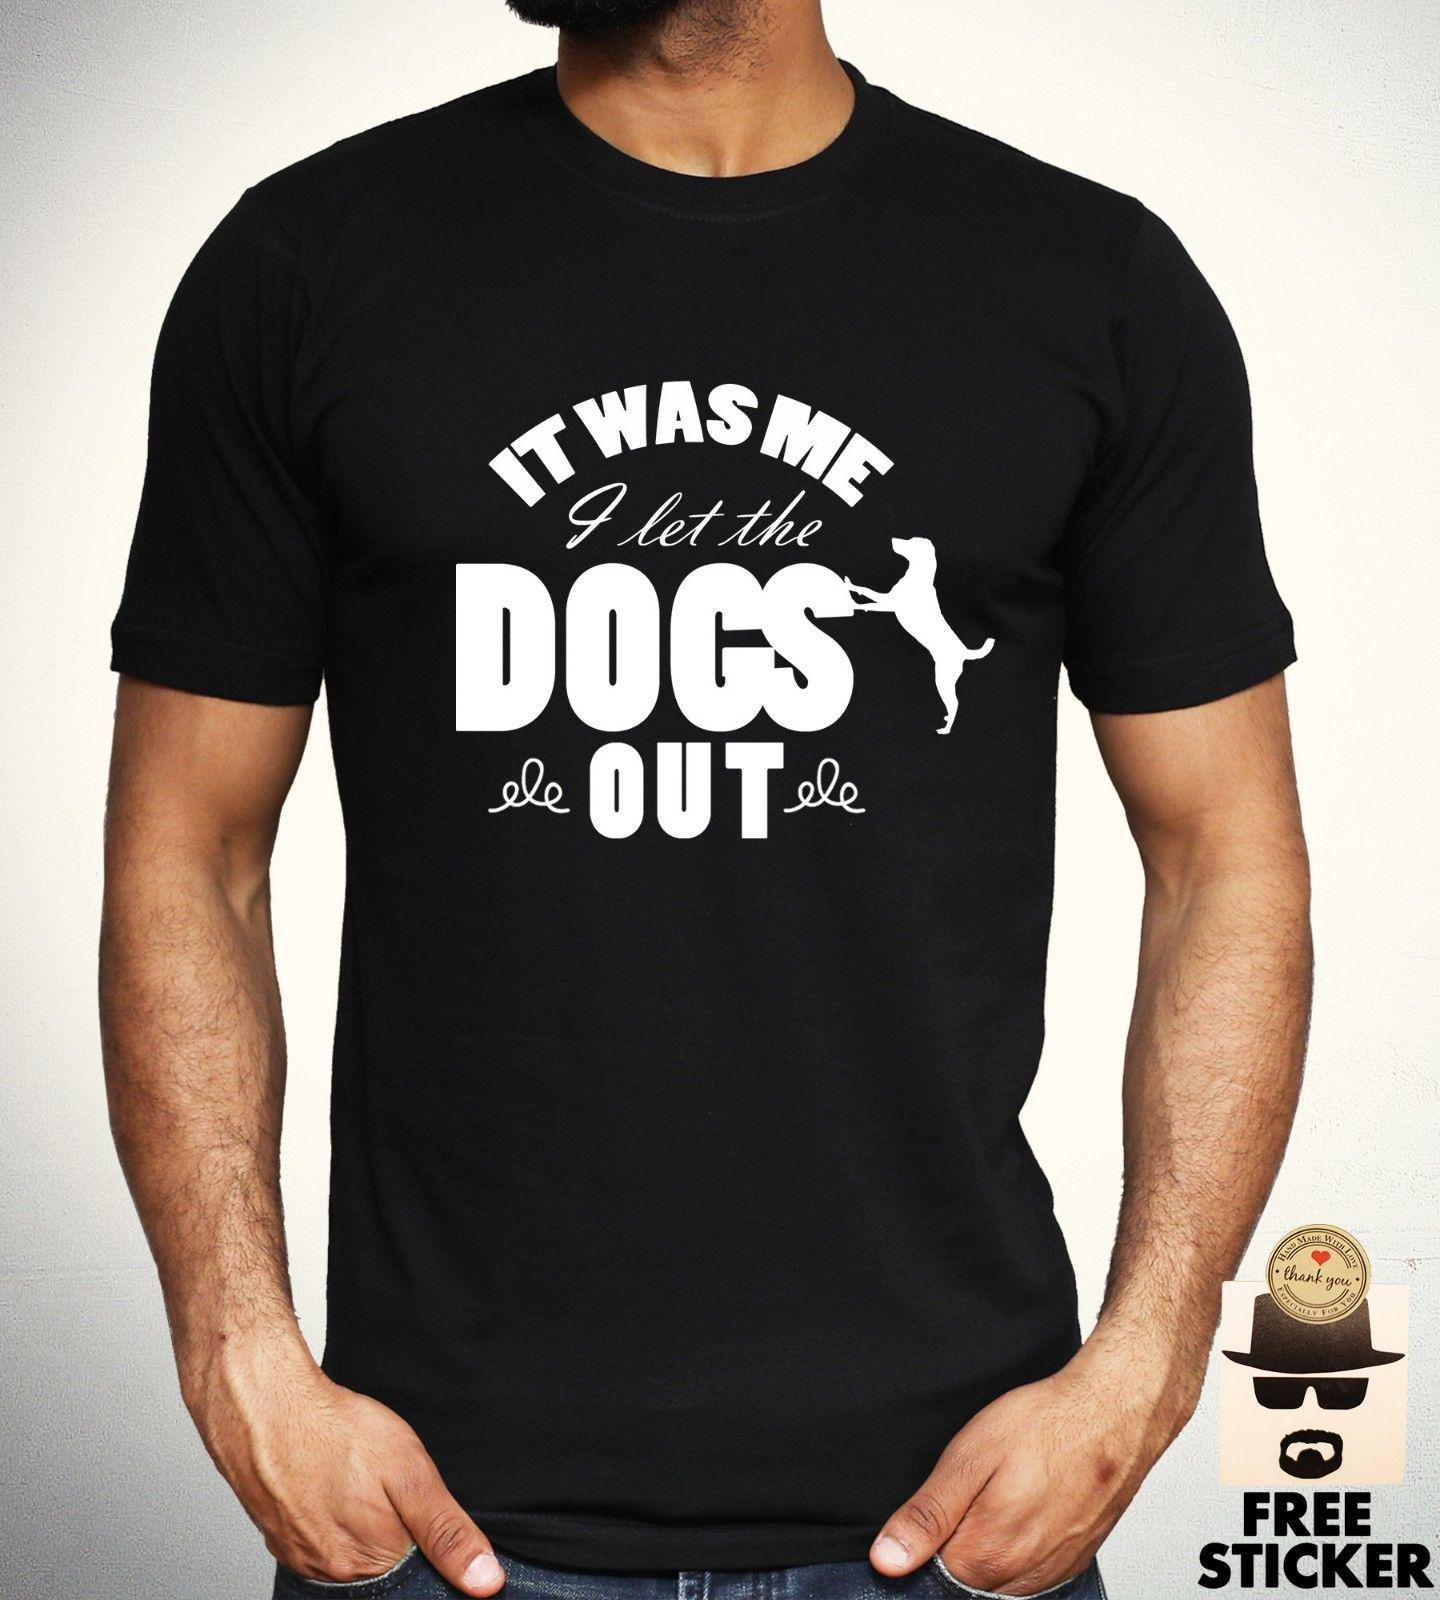 Who Let The Dogs Out T shirt Funny Song Parody Joke New Mens Women Gift Tee  Top 2018 Men S Lastest Fashion Short Sleeve Printed funny